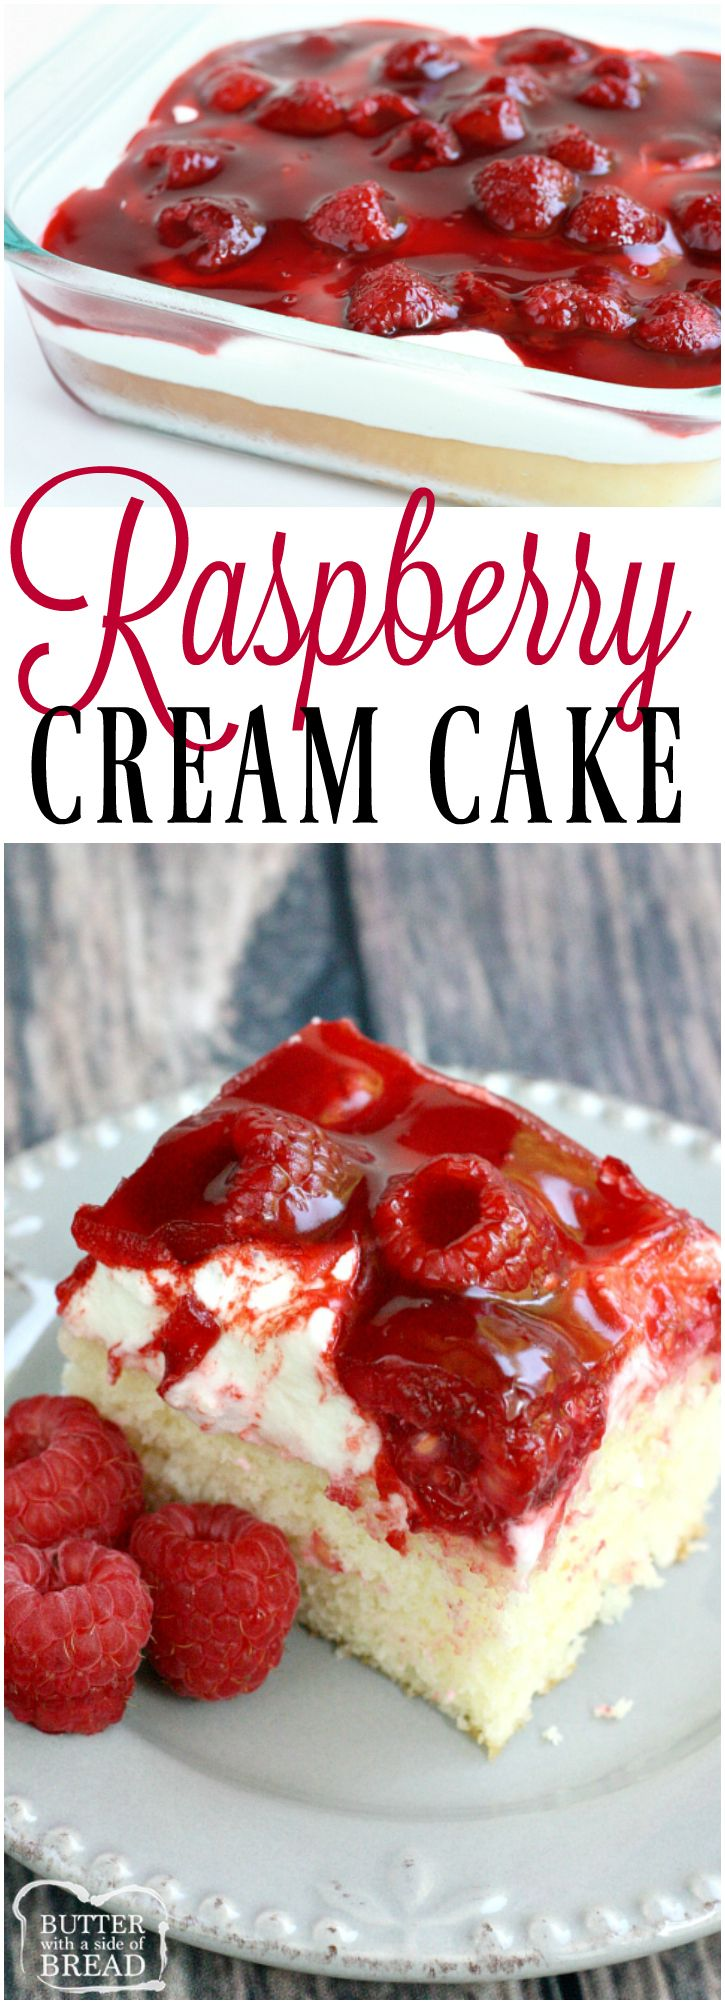 Raspberry Cream Cake begins with a white cake mix that is topped with sweet whipped cream, raspberries and danish #dessert. Easy, delicious & absolutely lovely #raspberry #whippedcream #cake #recipe from Butter With A Side of Bread #cakemix #berries&cream